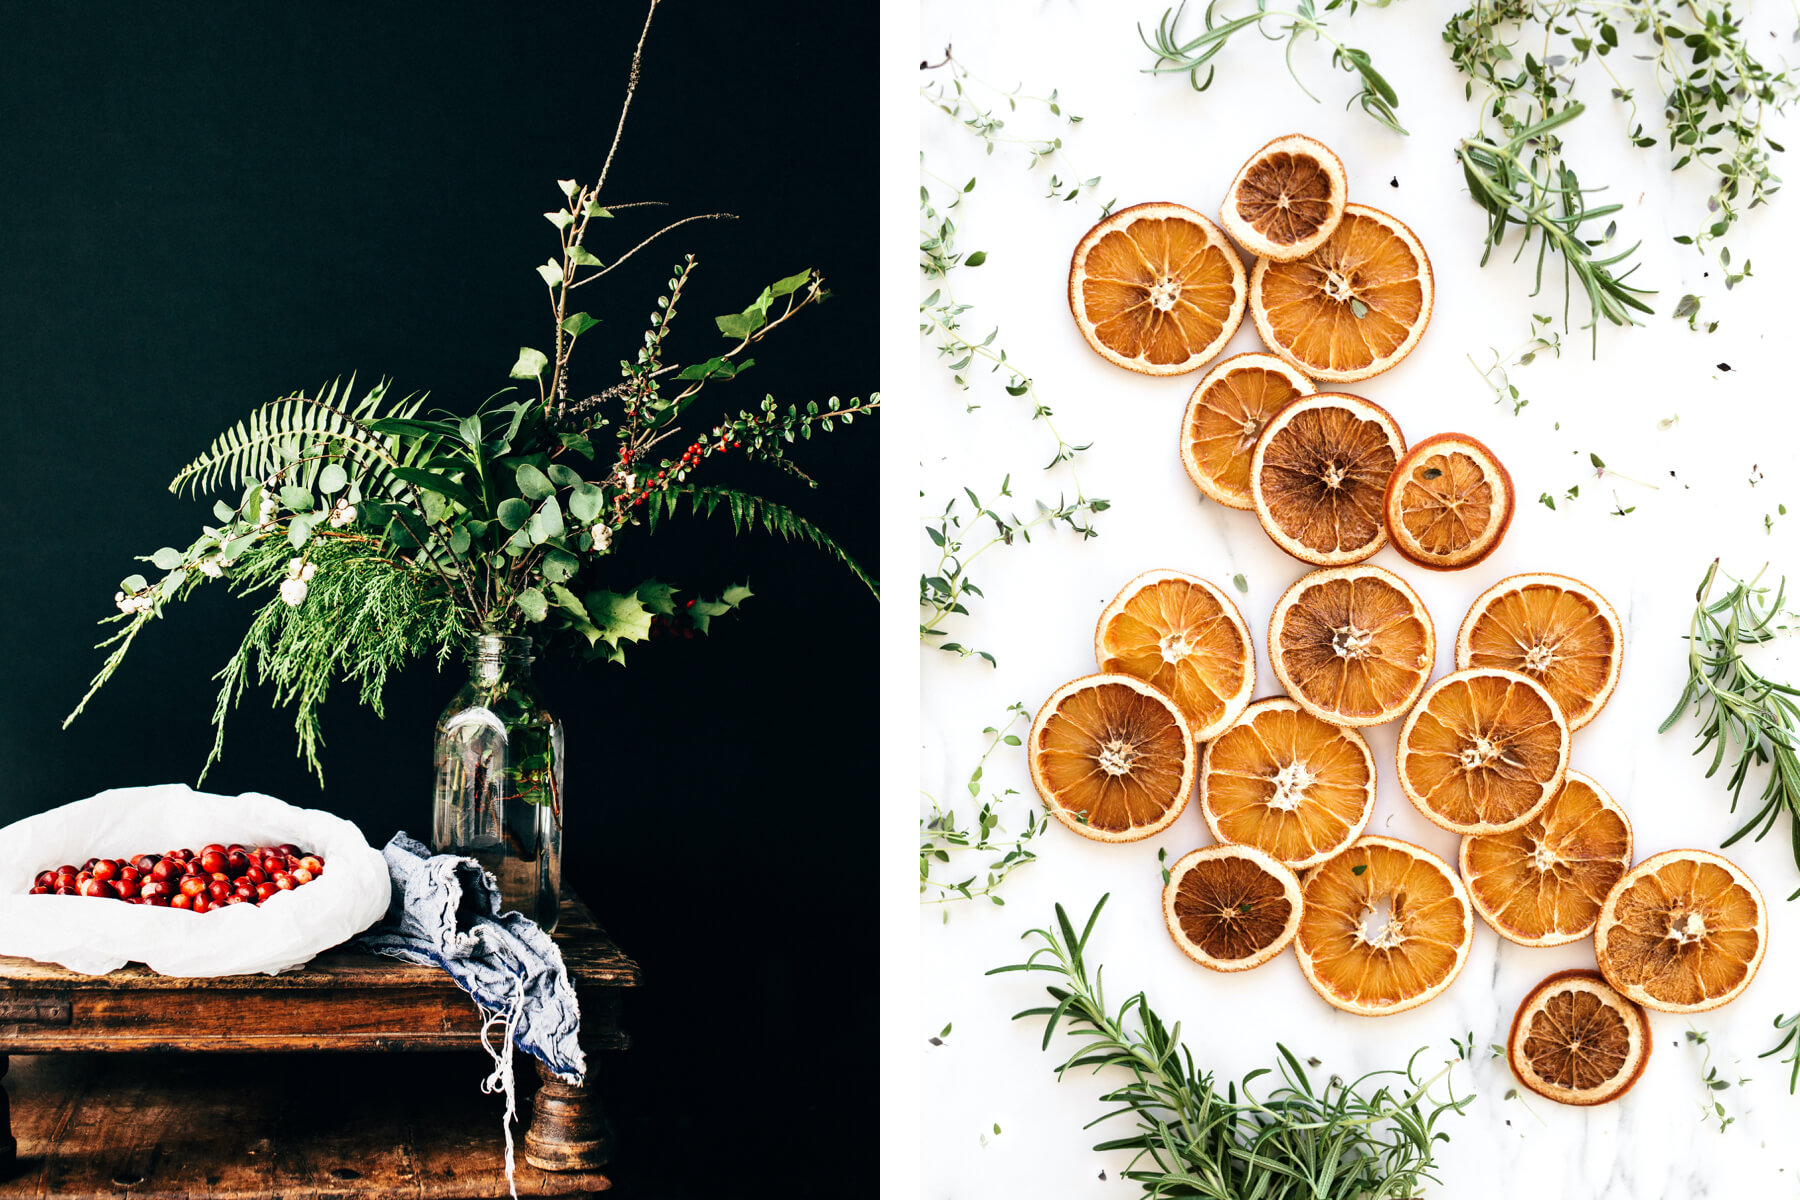 how to decorate for a holiday party using evergreens and citrus